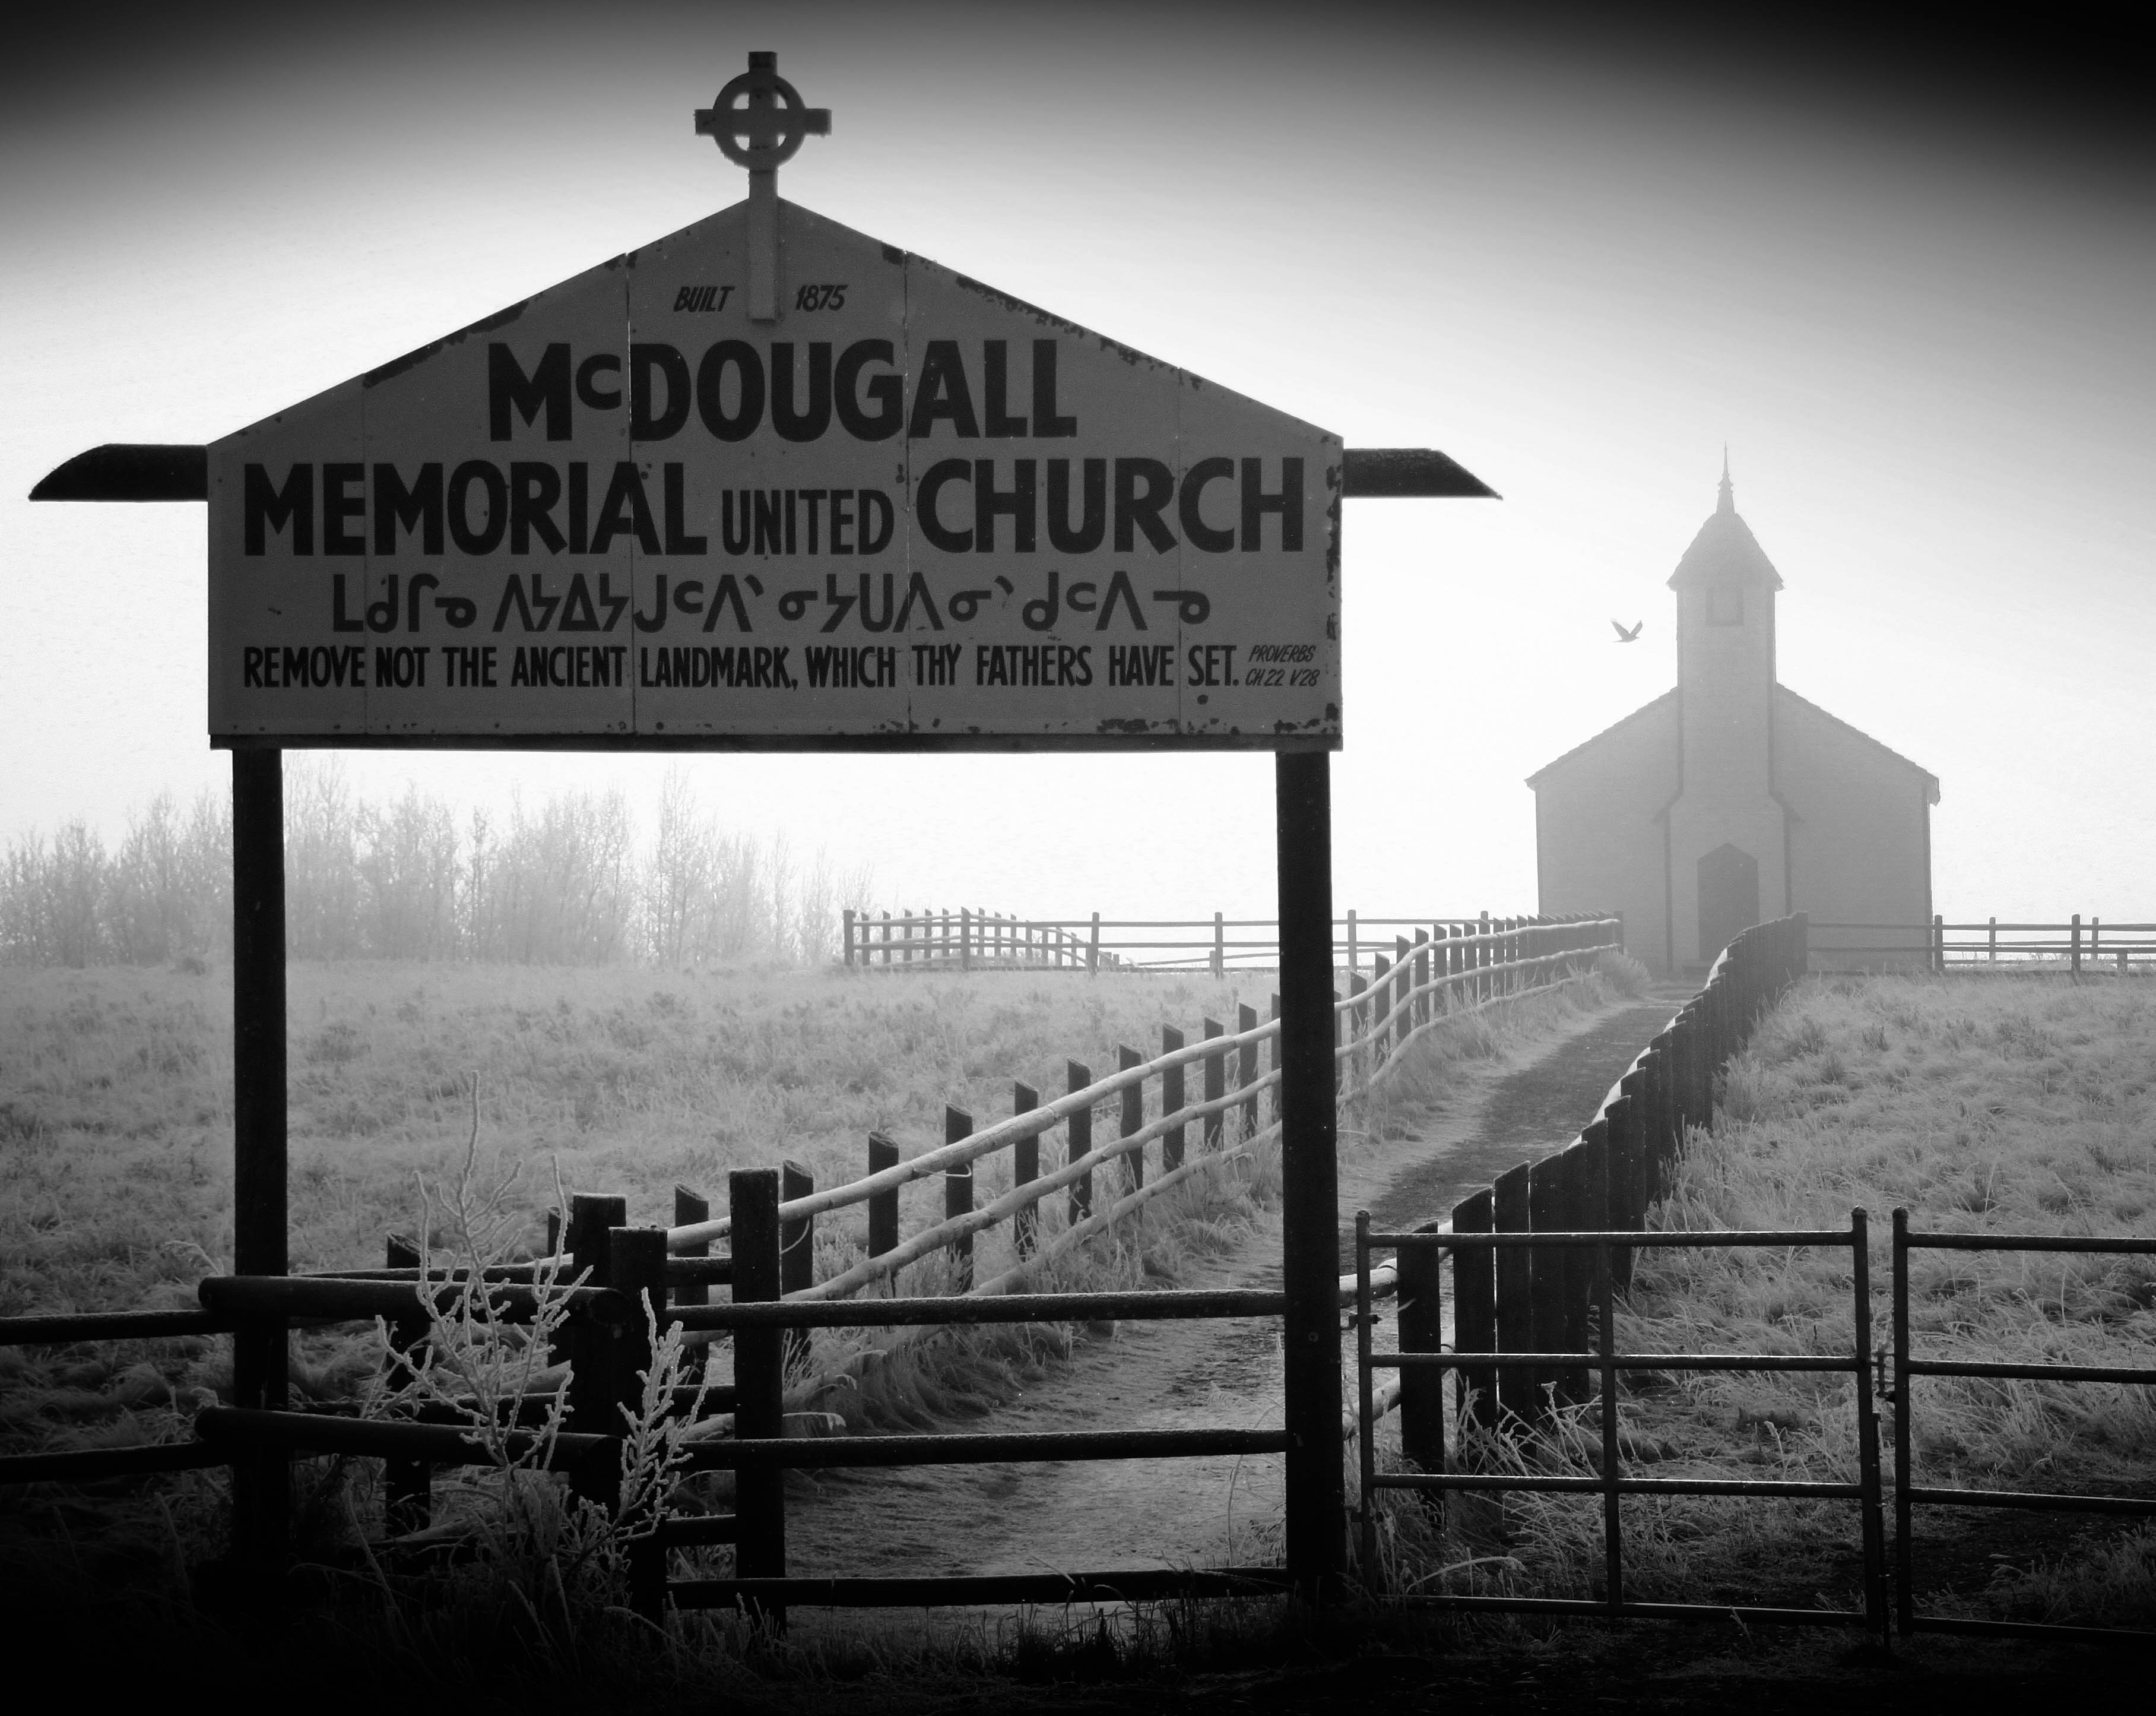 McDougall Memorial United Church